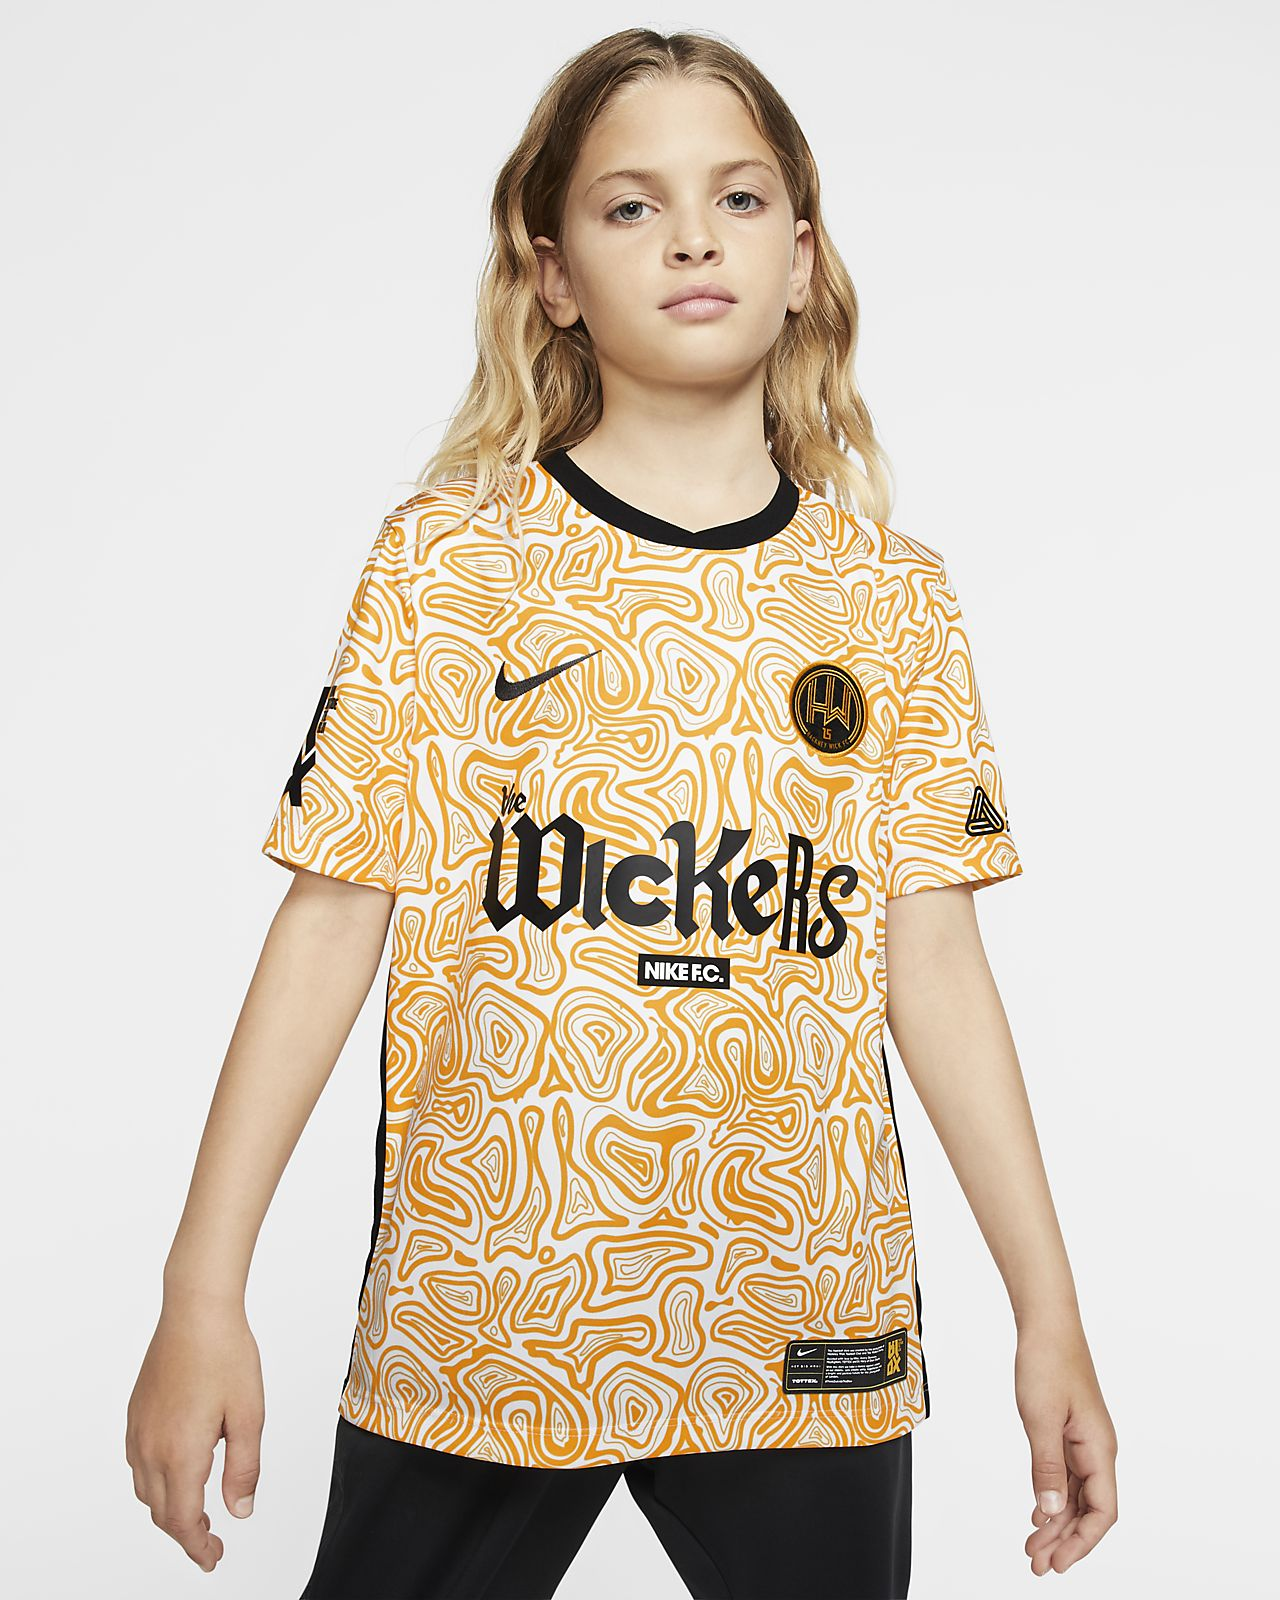 Camisola de futebol Hackney Wick FC Away Júnior